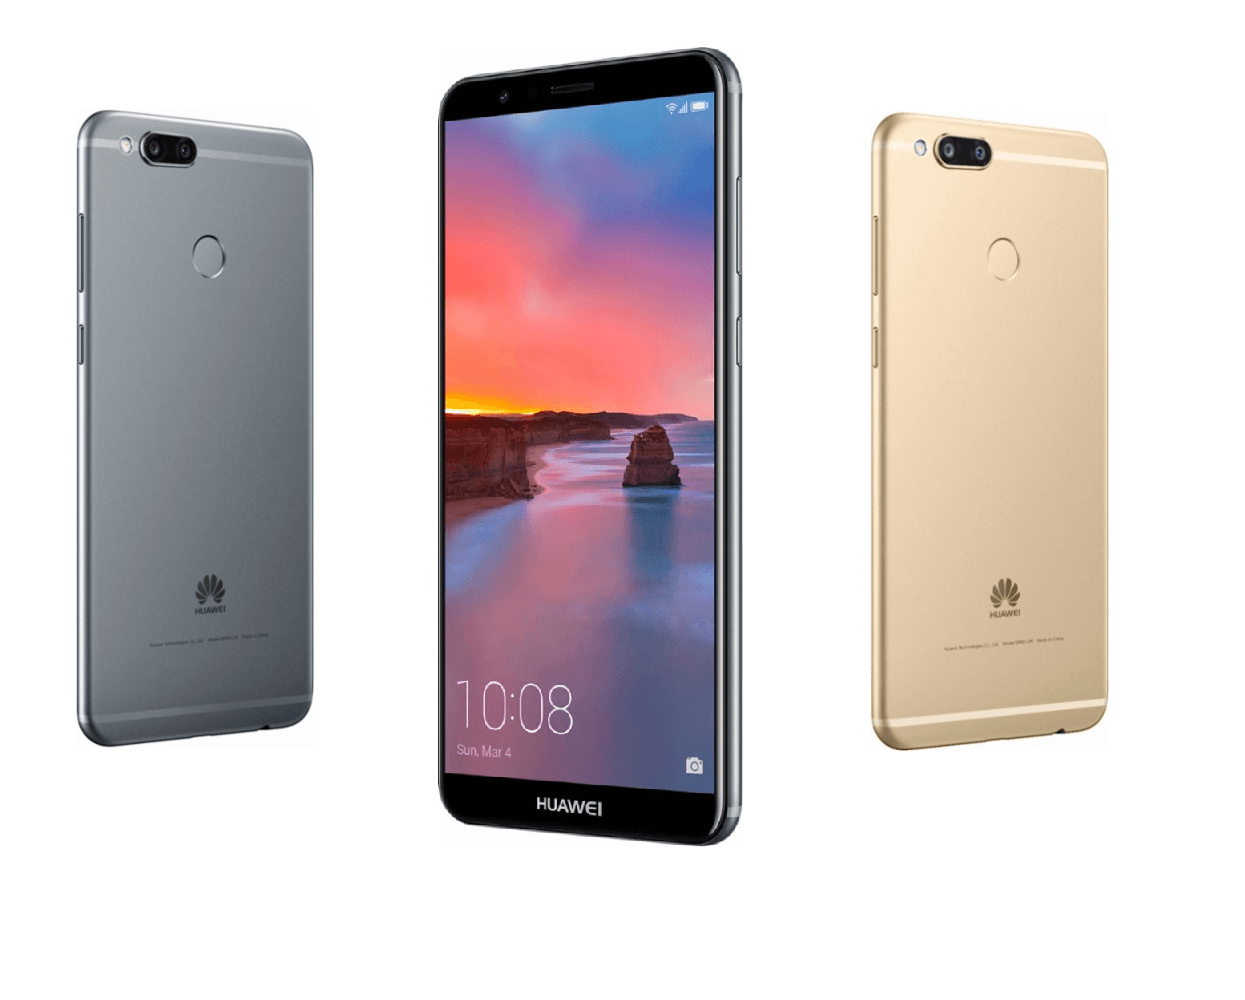 Huawei Mate Se Release An Honor 7x With More Ram And